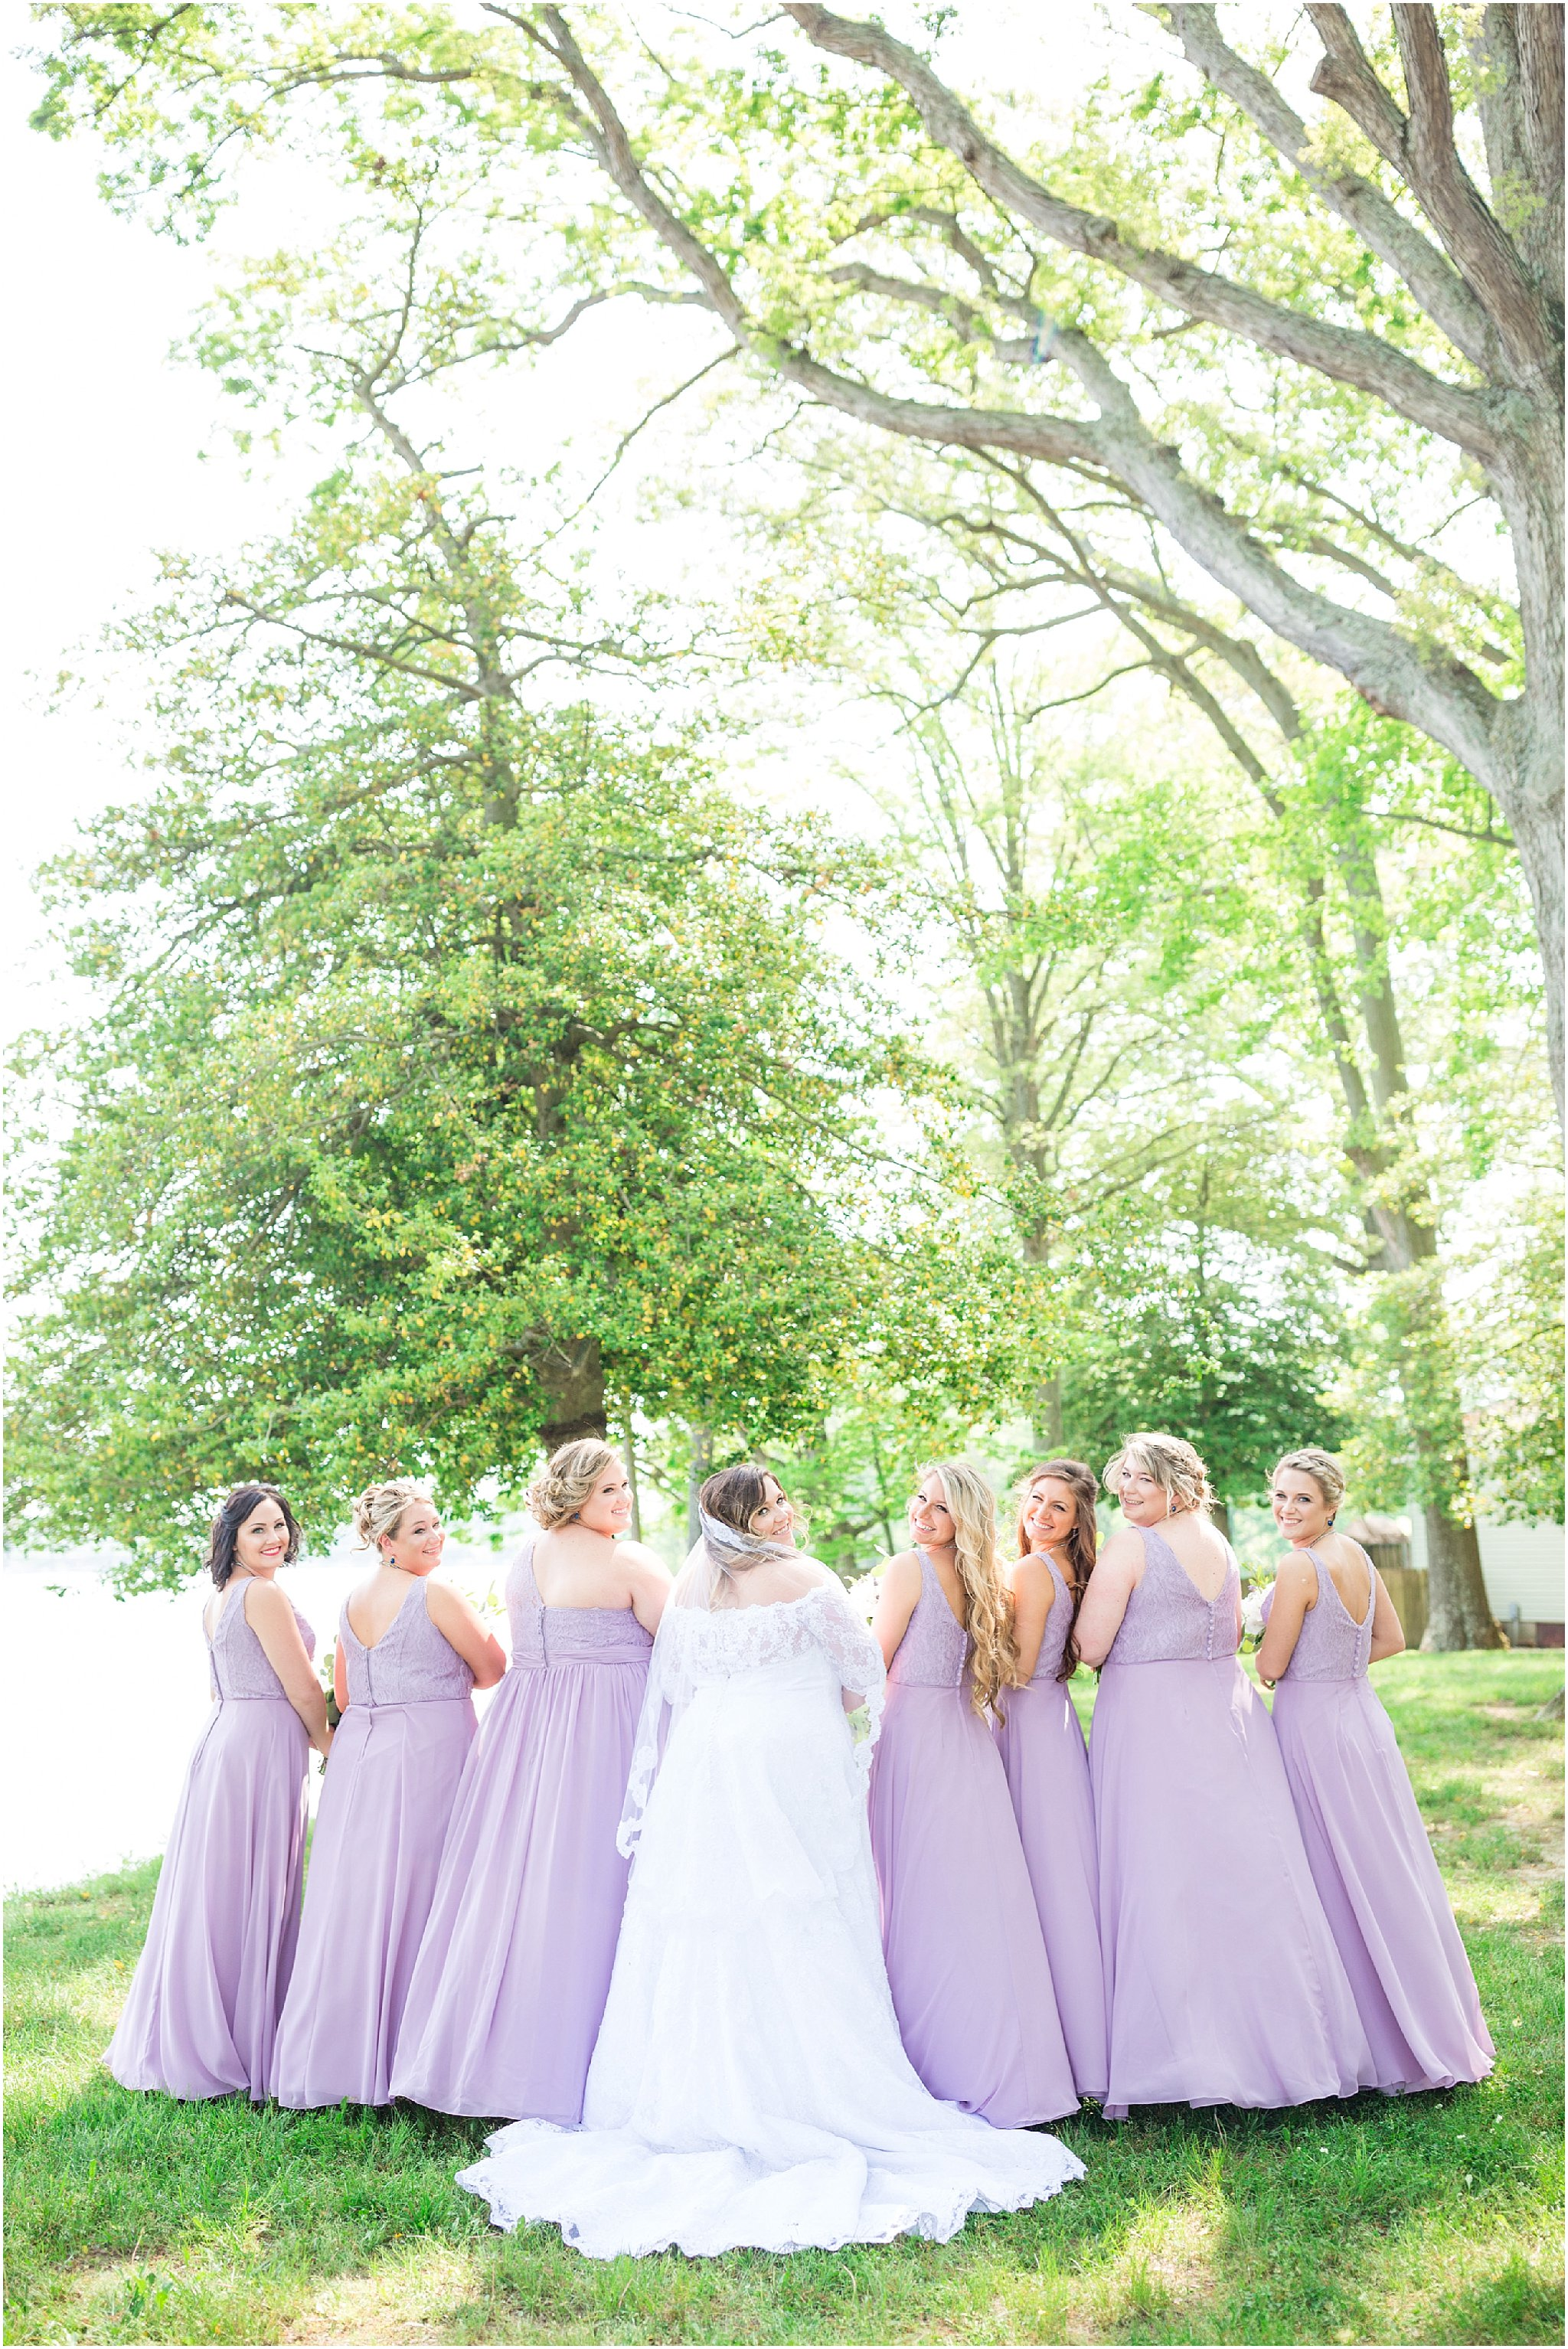 cole-wye-island-wedding-cassidymrphotography_0079